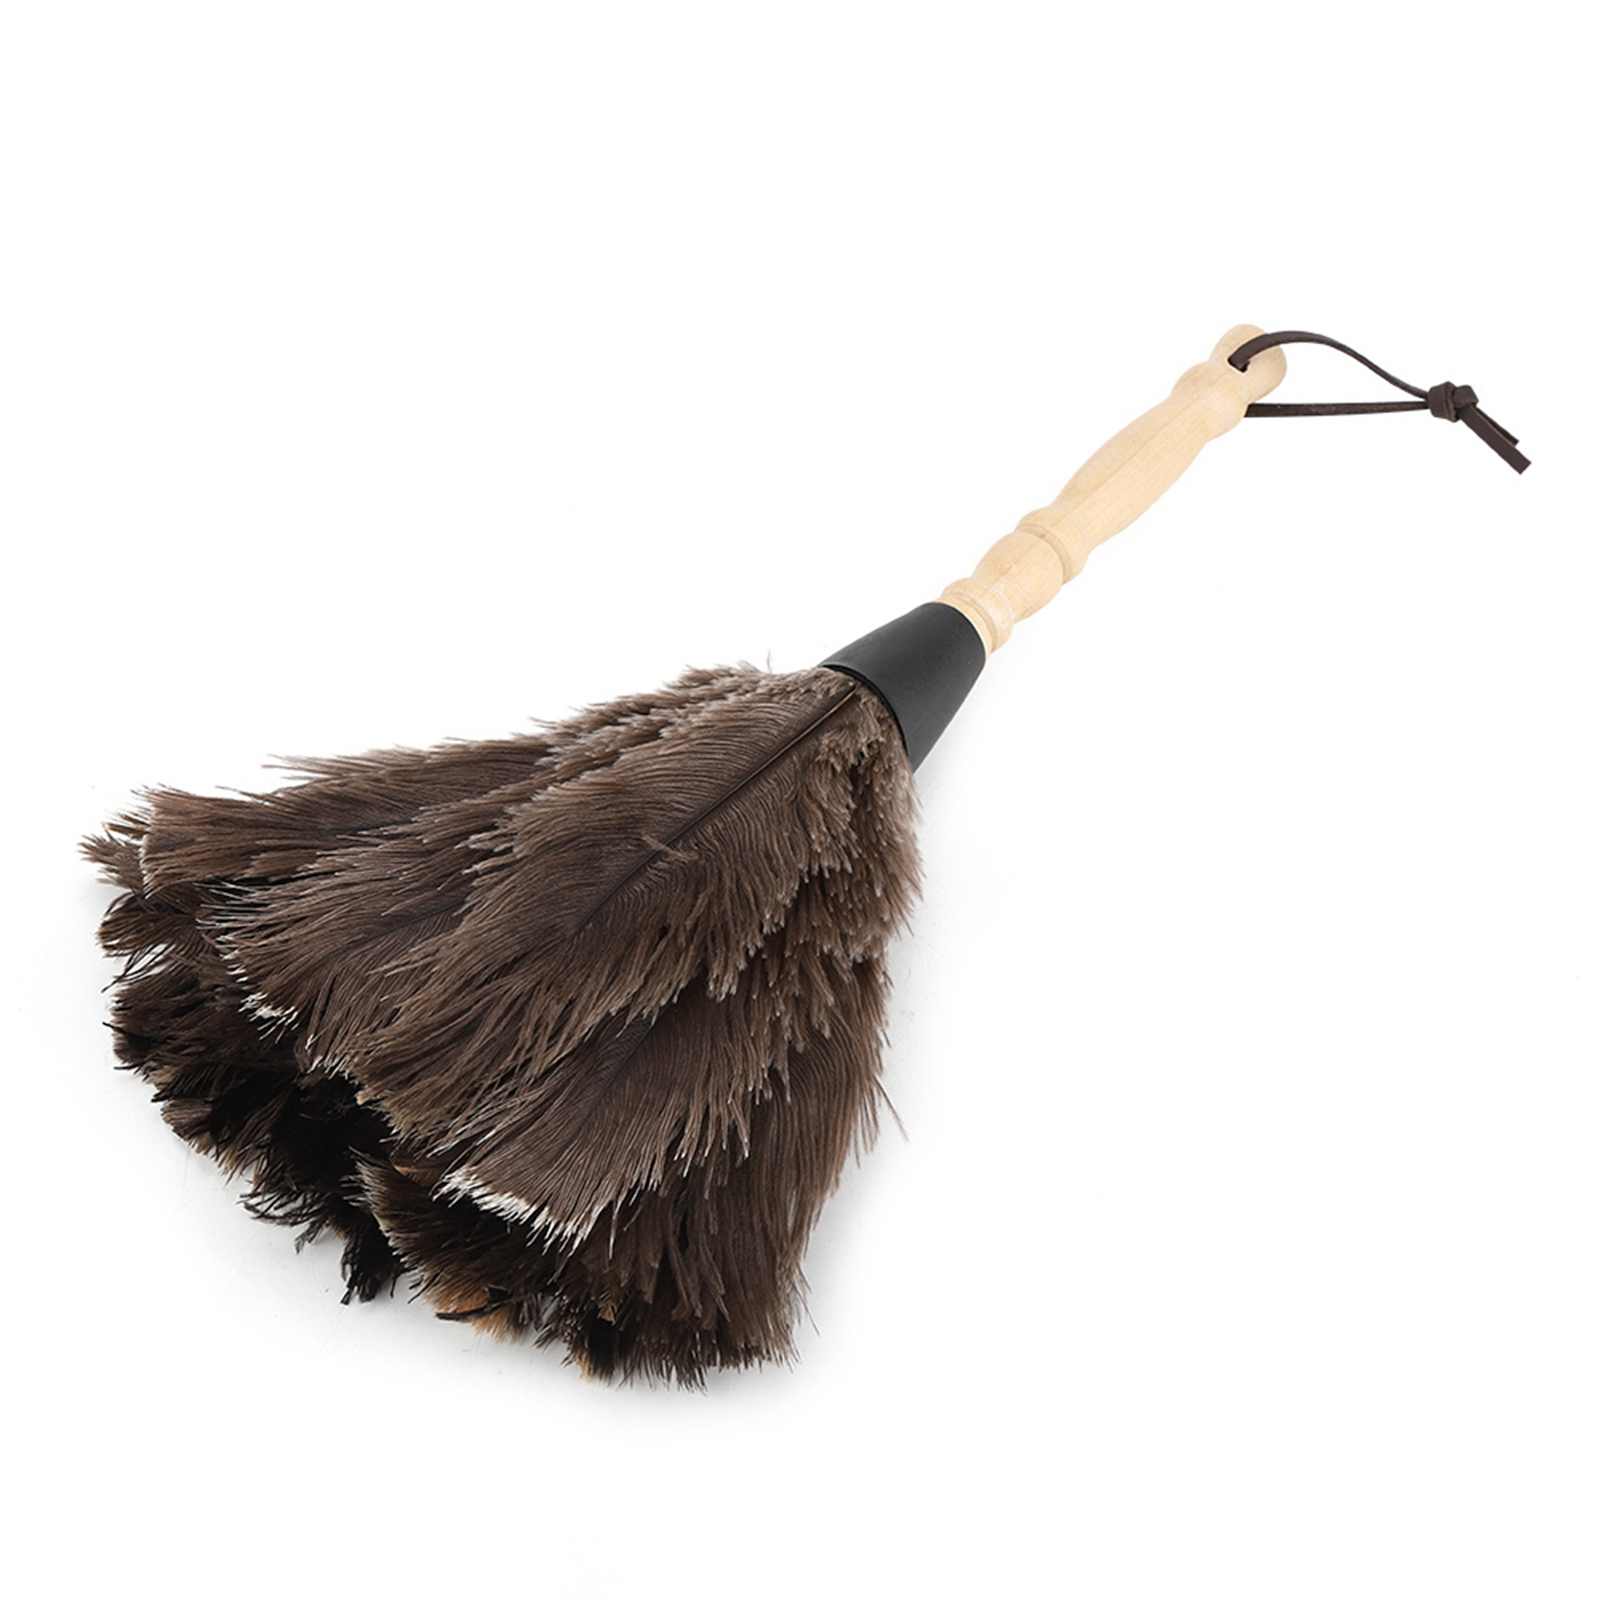 Anti-static-Wool-Ostrich-Feather-Fur-Brush-Duster-Dust-Cleaning-Tool-Wood-Handle thumbnail 21